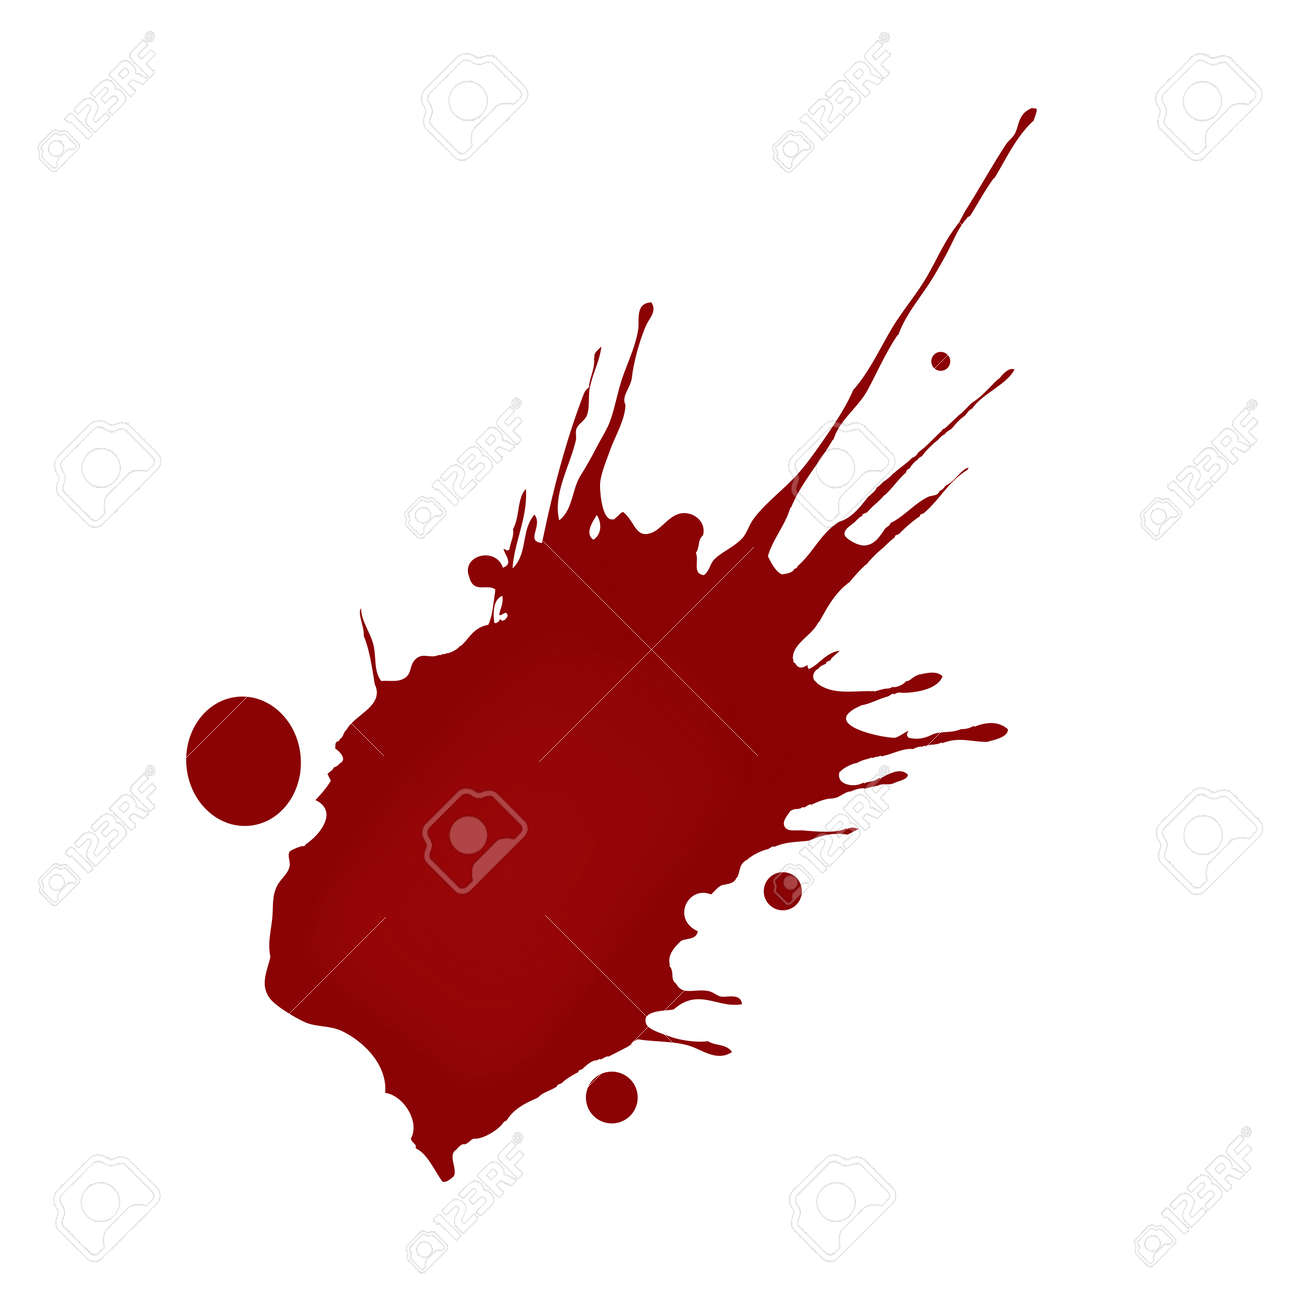 realistic blood splatters royalty free cliparts vectors and stock rh 123rf com blood splatter vector illustrator blood splatter transparent vector